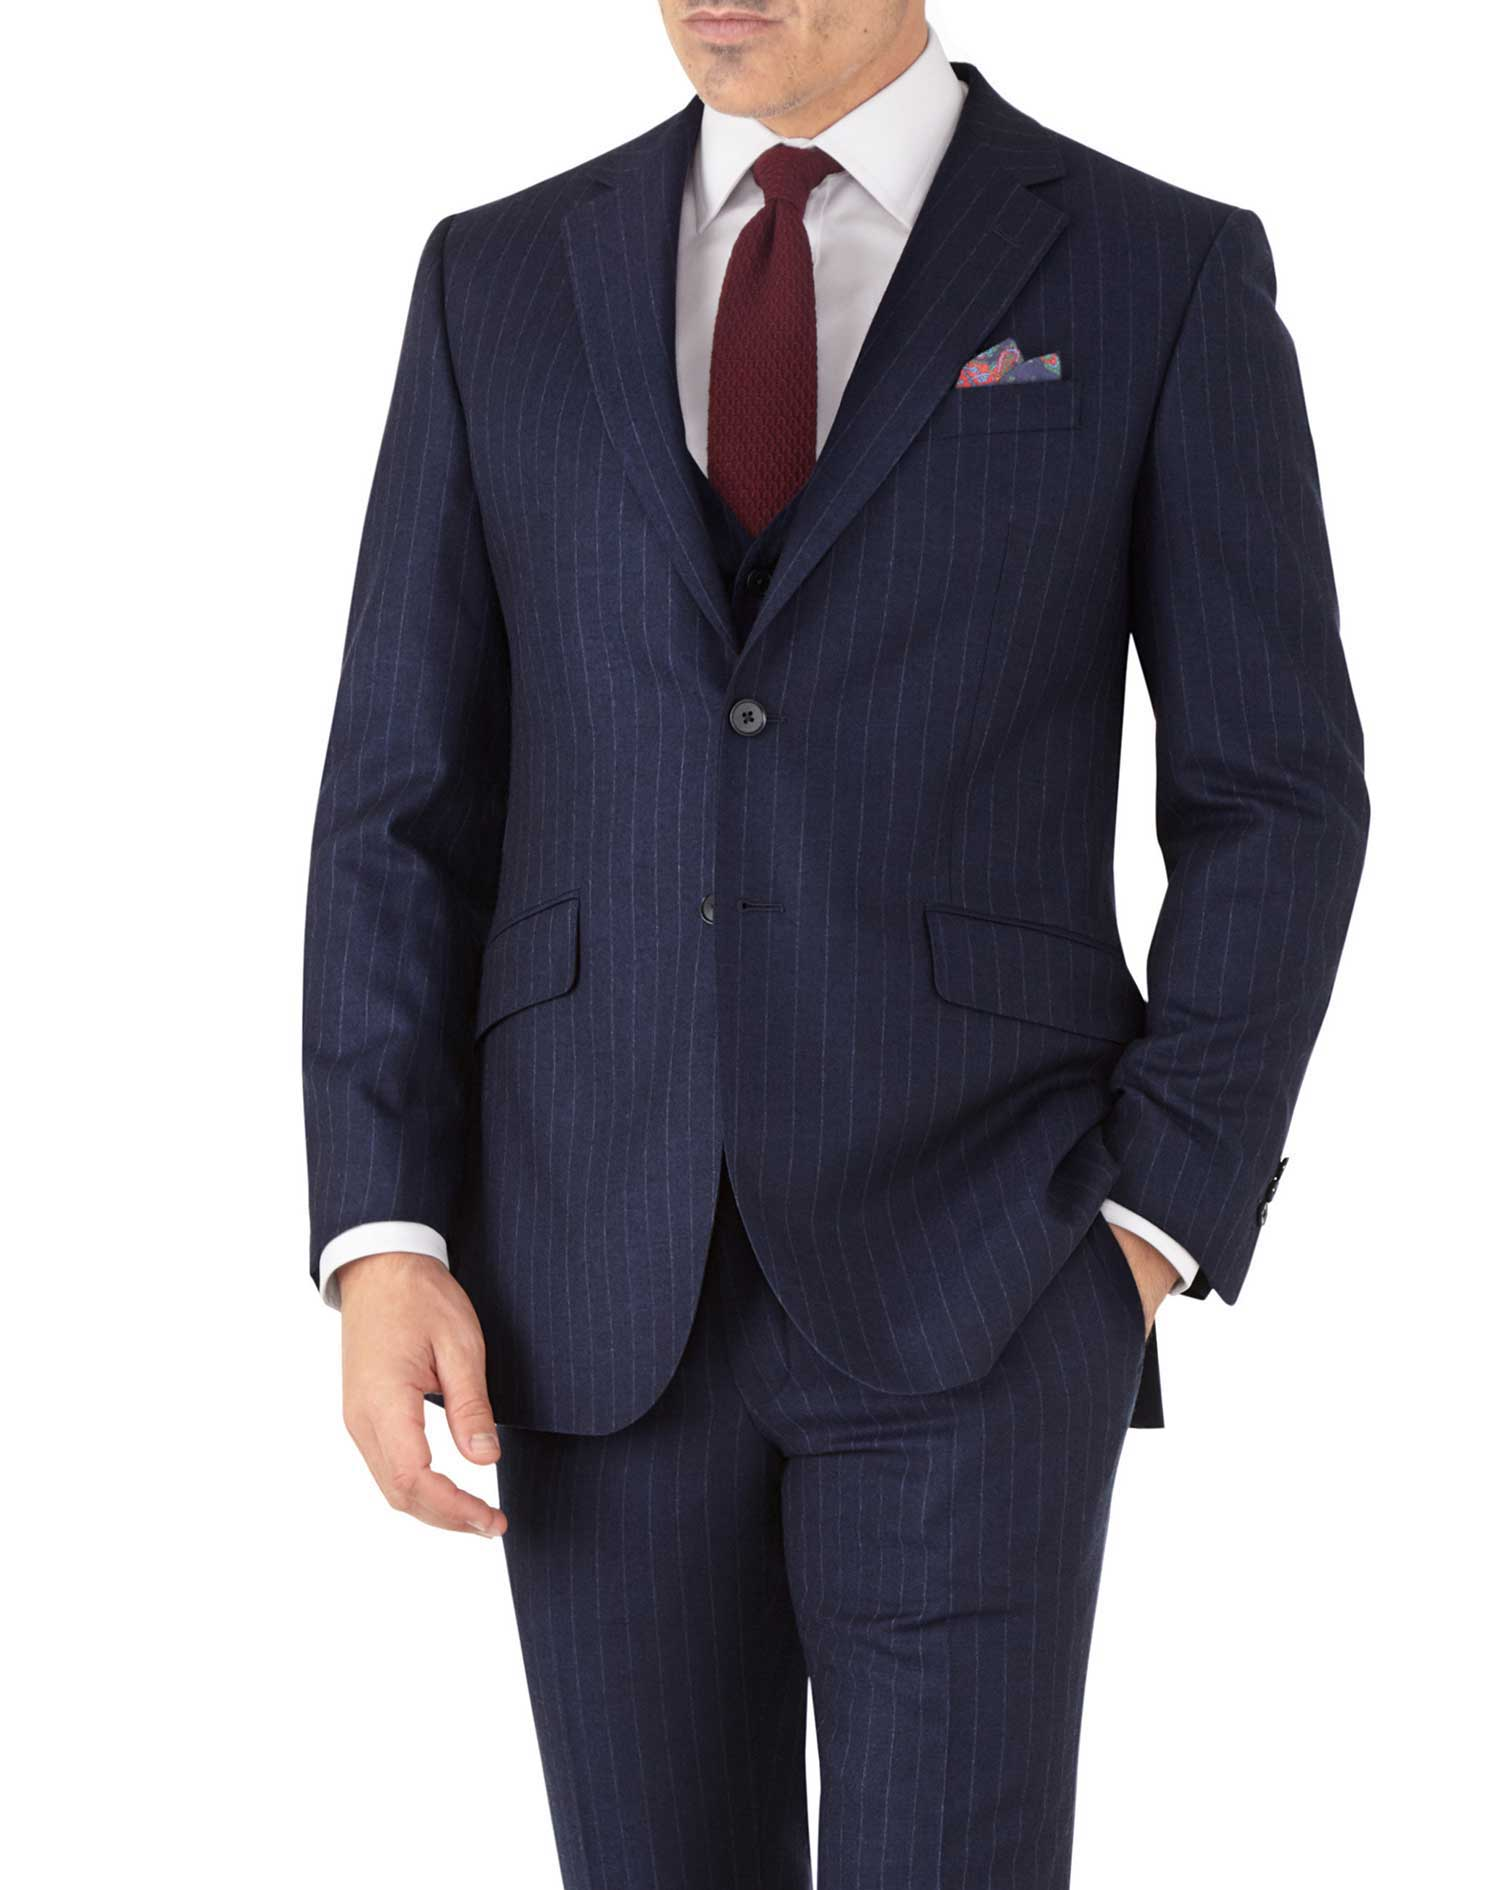 Navy Stripe Slim Fit Flannel Business Suit Wool Jacket Size 38 Long by Charles Tyrwhitt